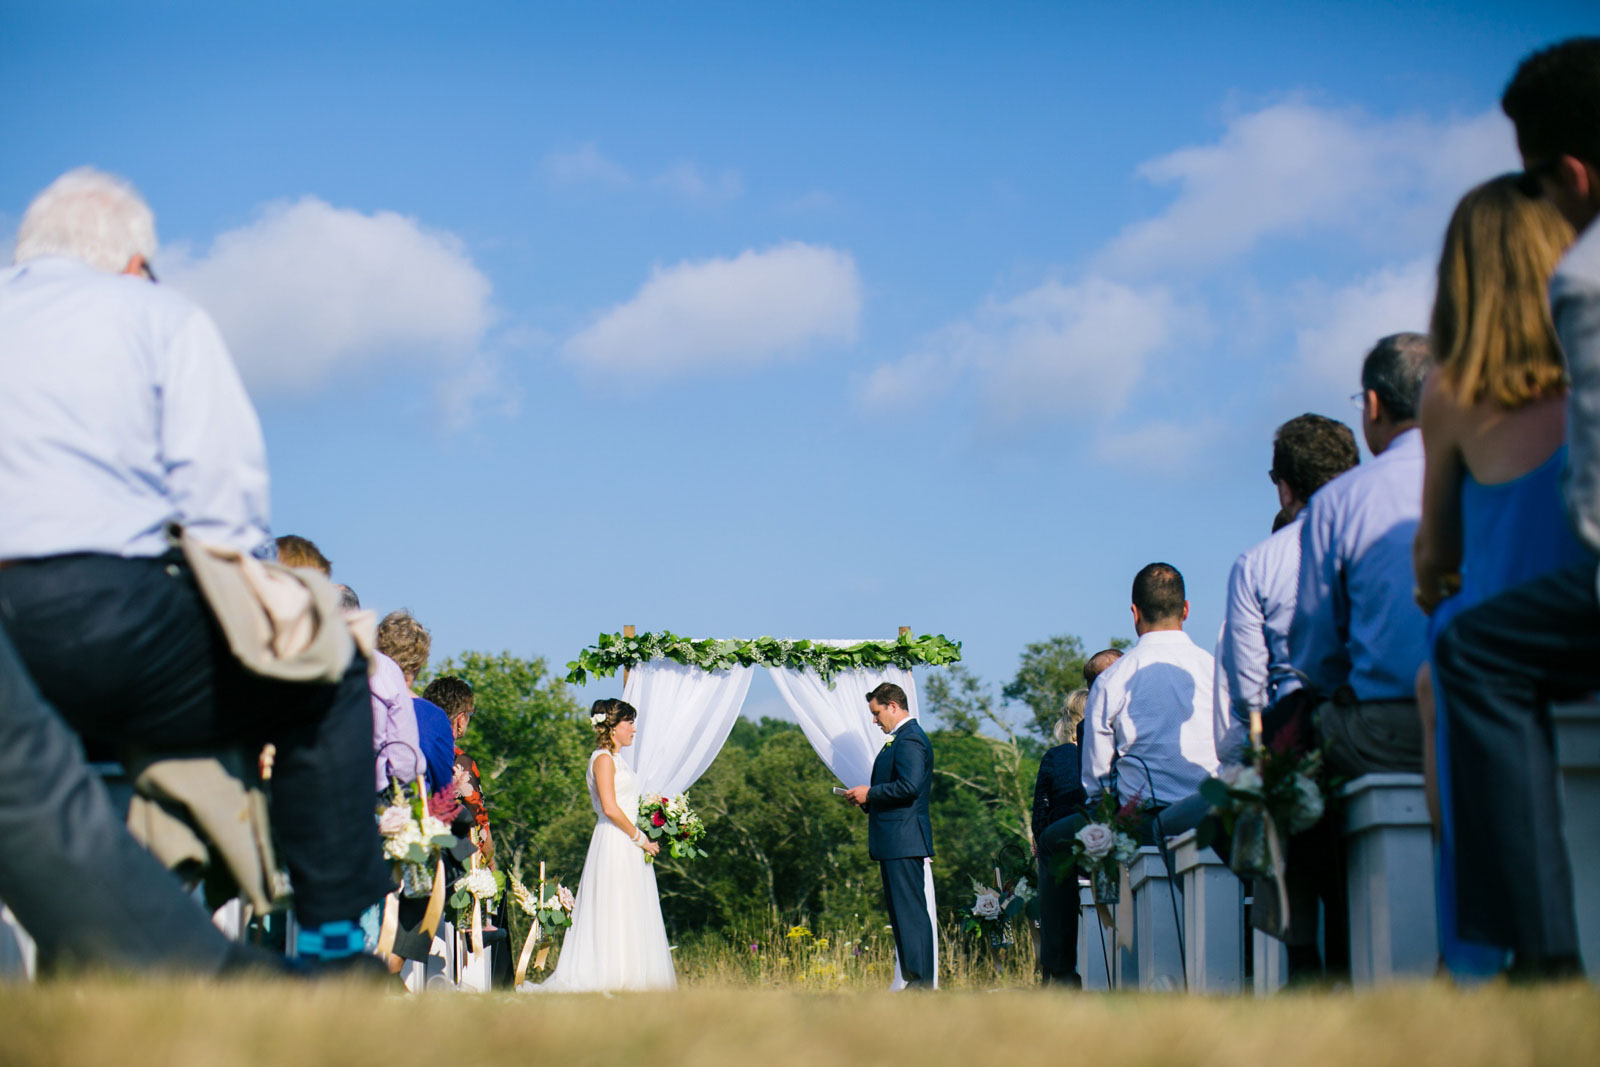 Looking down the aisle from the ground, bride and groom stand under ceremony structure